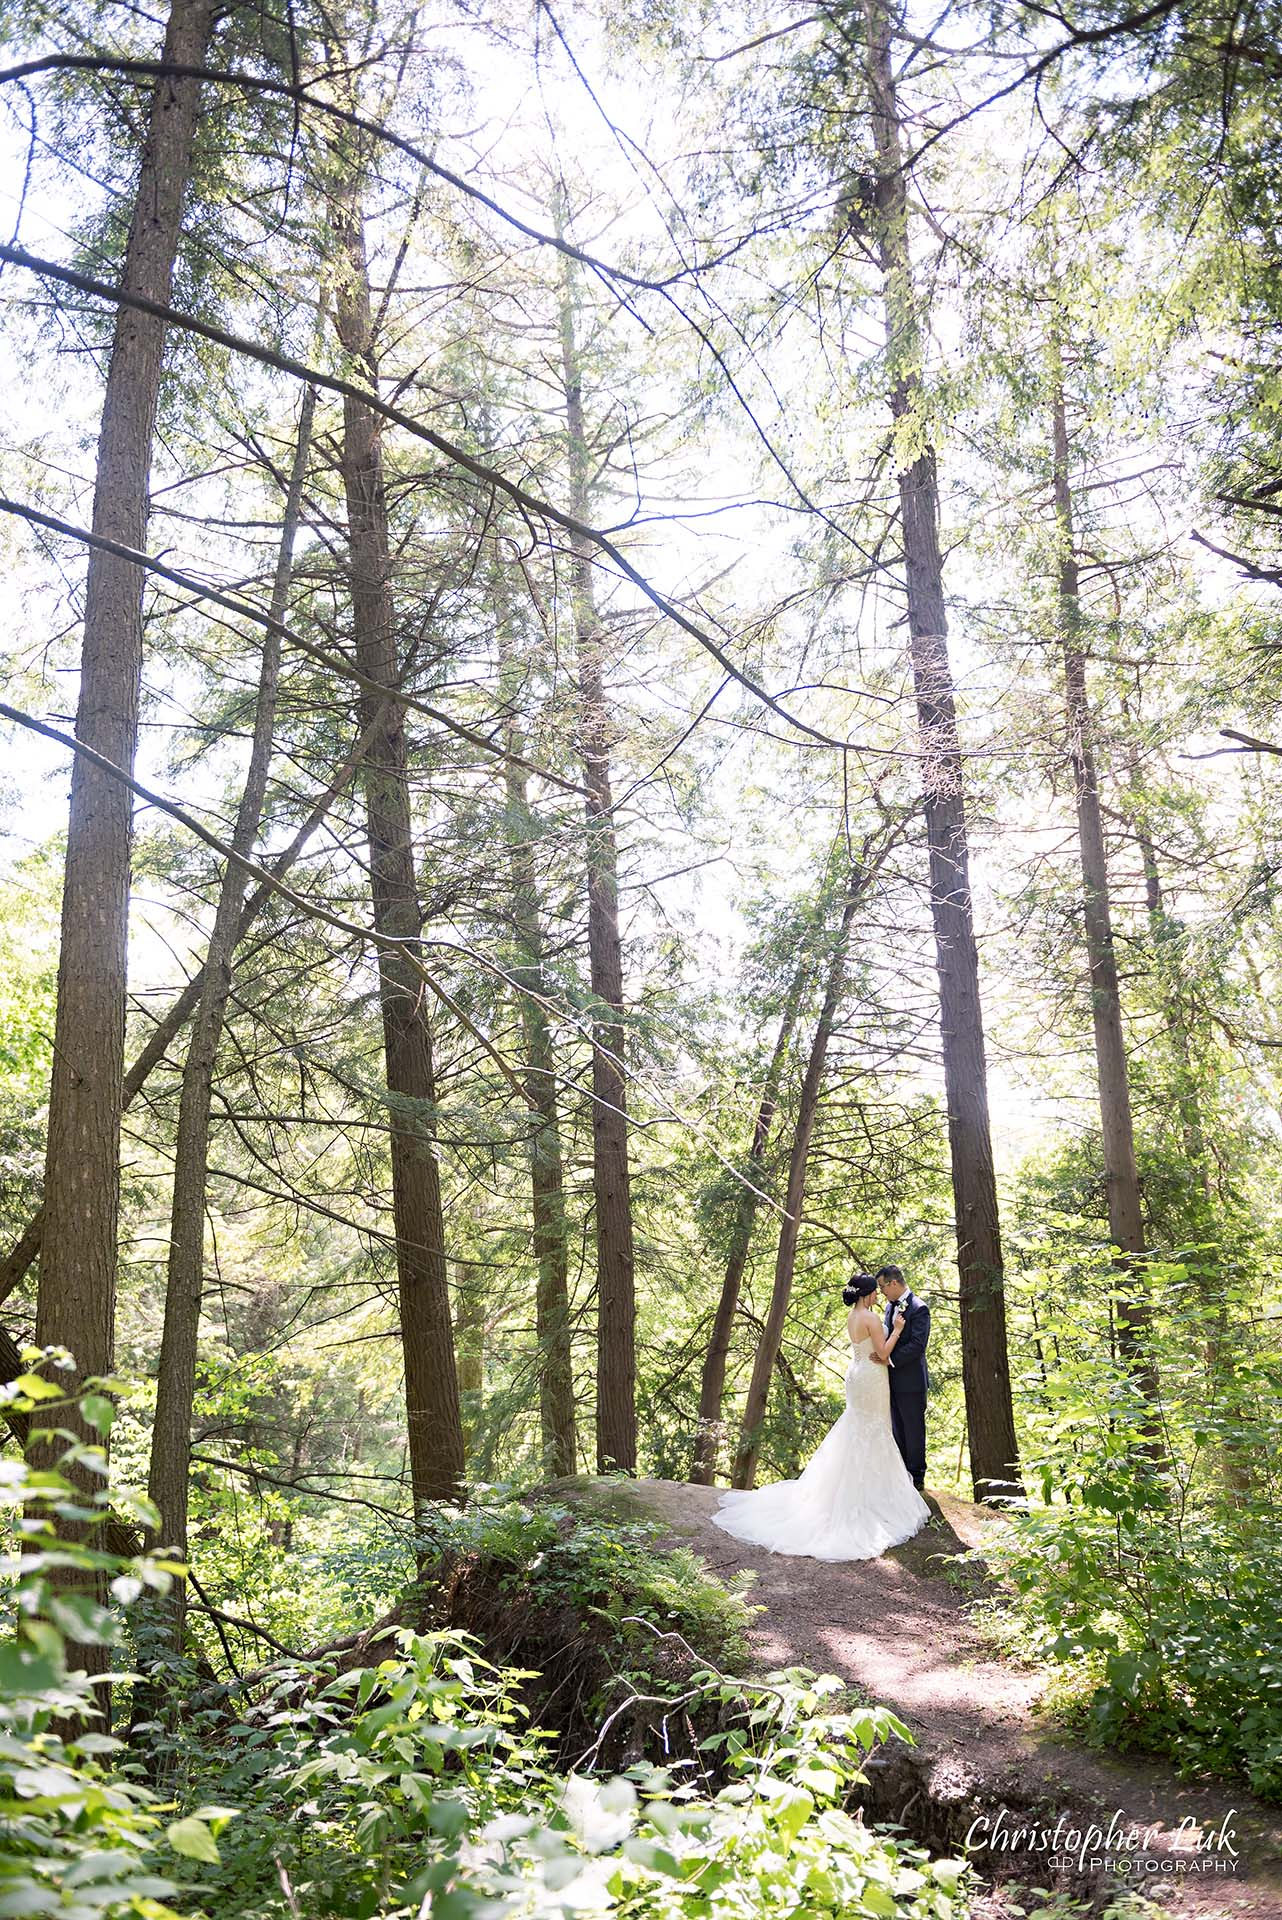 Christopher Luk Toronto Christian Community Church Kleinburg McMichael Art Gallery Presidente Banquet Hall Vaughan Wedding Photographer Bride Groom Natural Candid Photojournalistic Forest Cliff Lookout Overlook Woods Wooded Area Hug Hold Intimate Tall Trees Leading Lines Creative Portrait